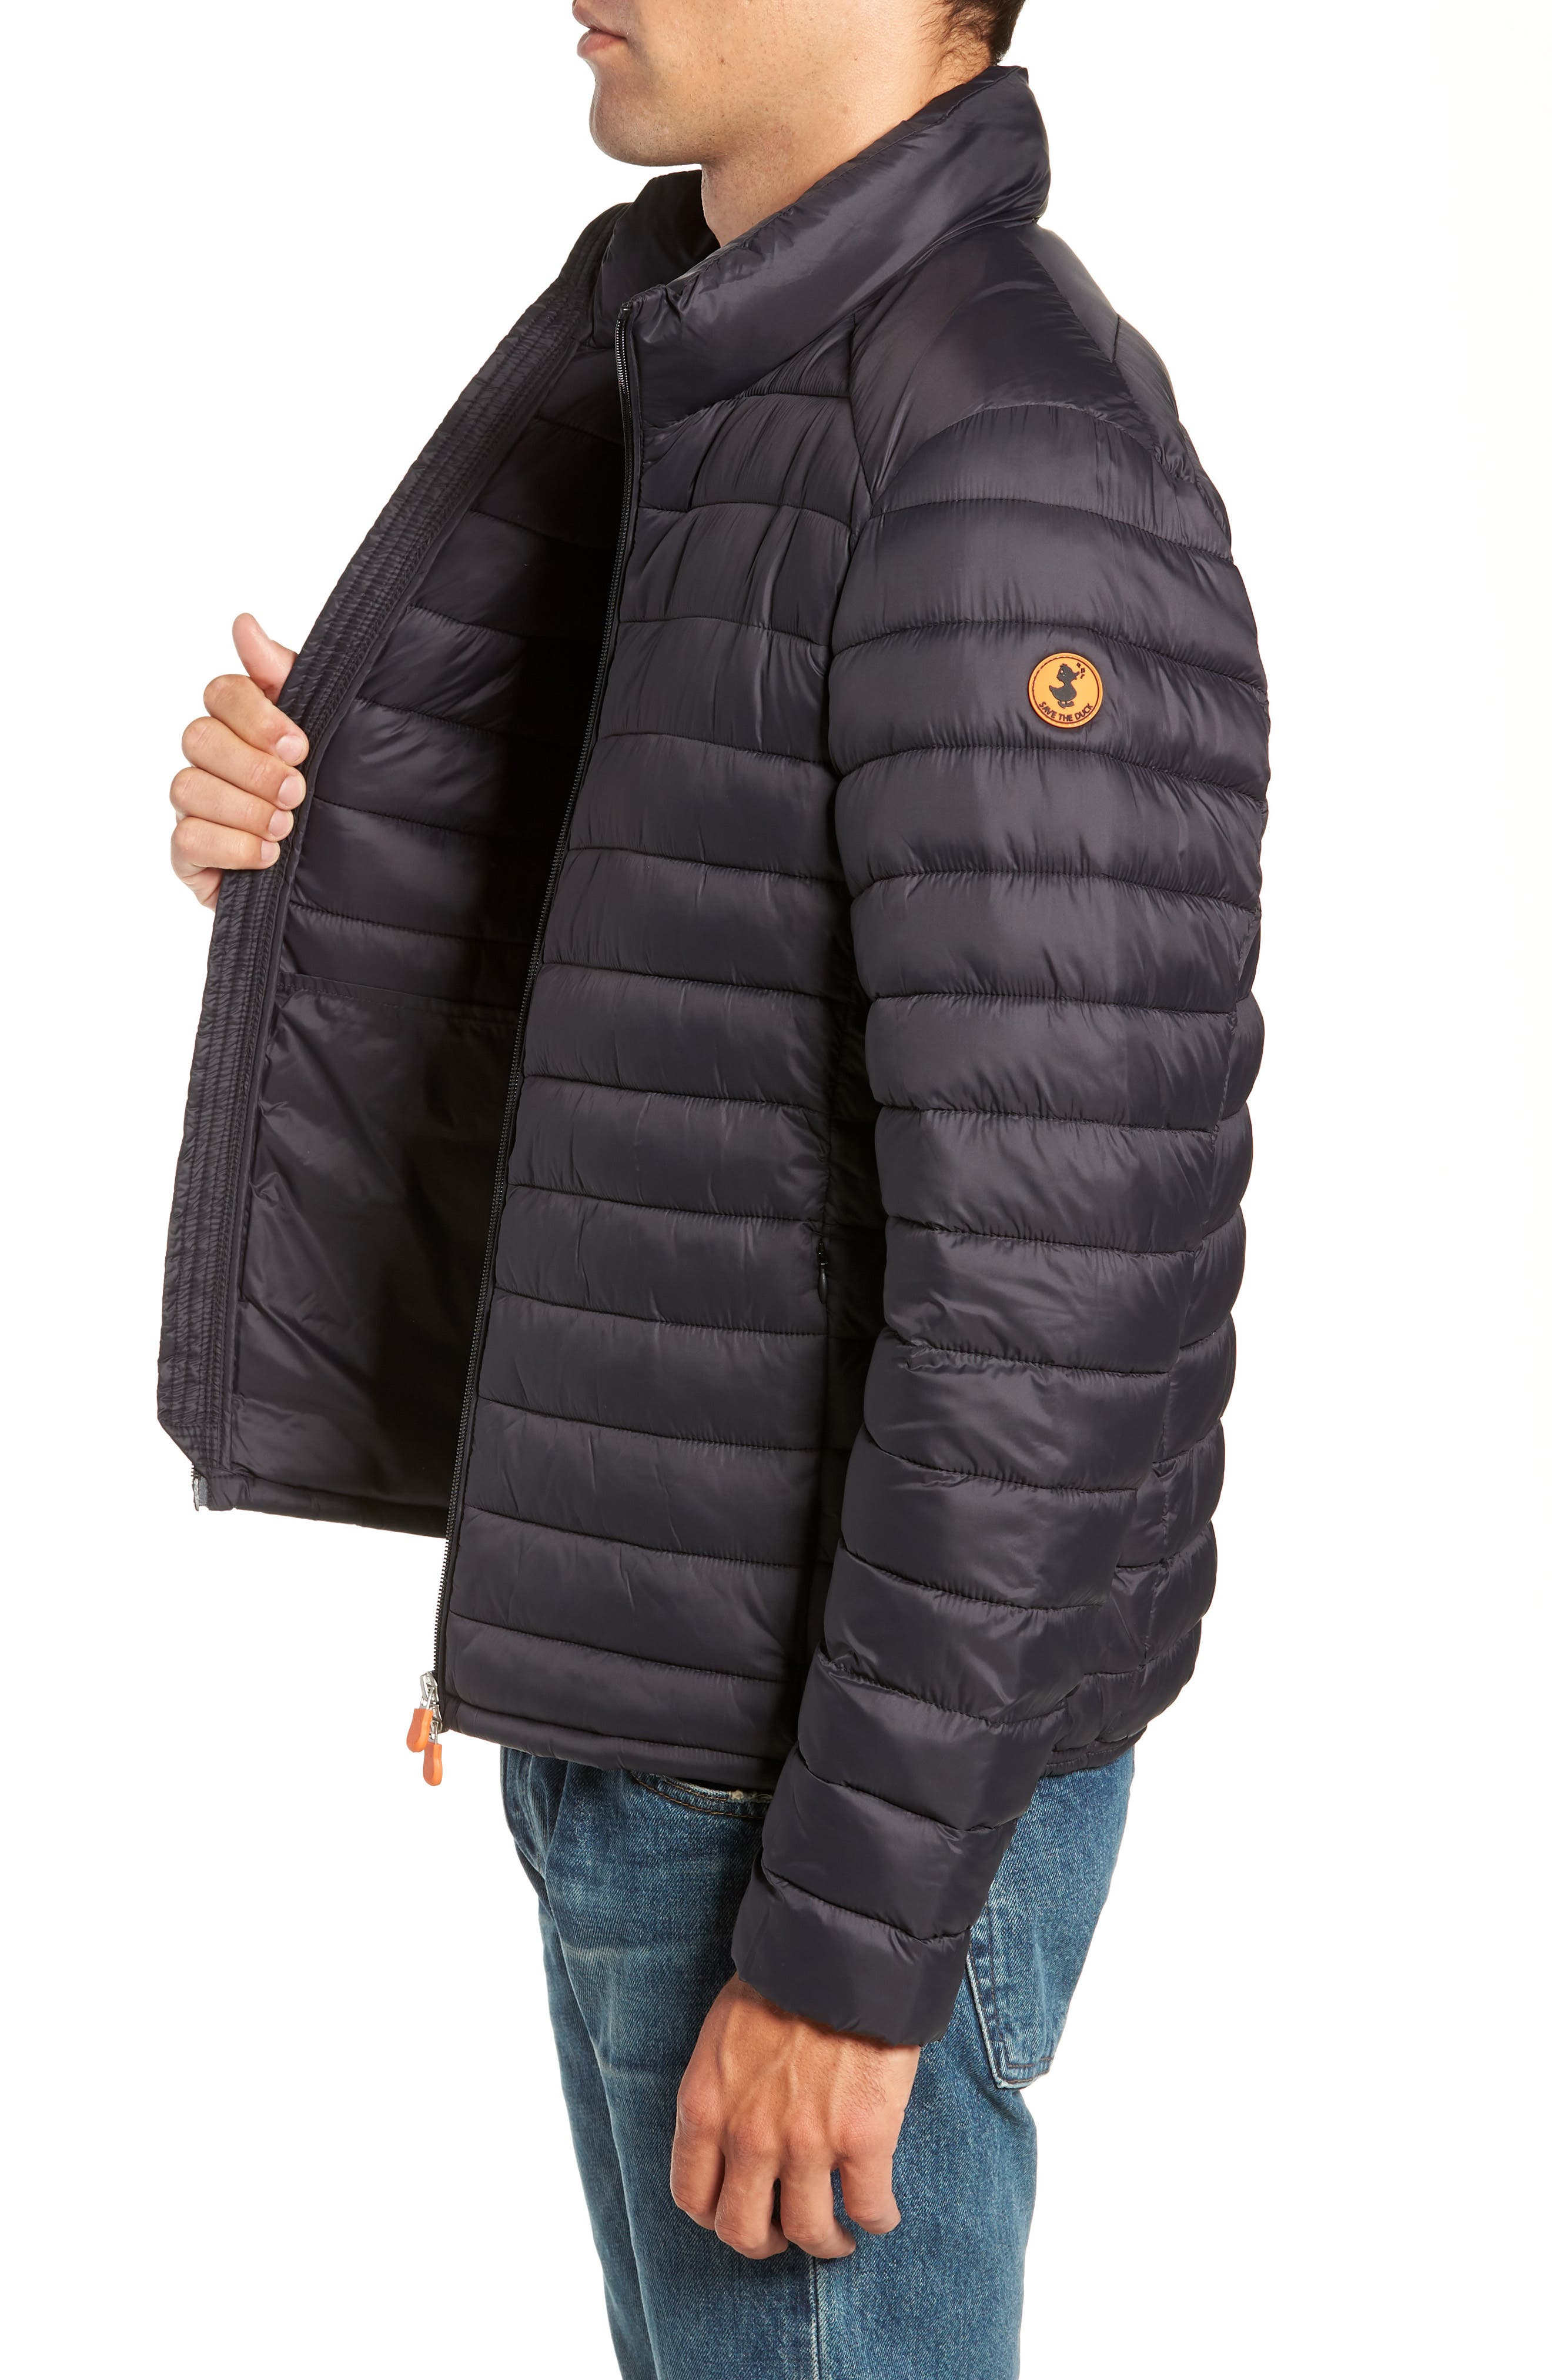 PLUMTECH<sup>®</sup> Insulated Packable Jacket,                             Alternate thumbnail 3, color,                             001